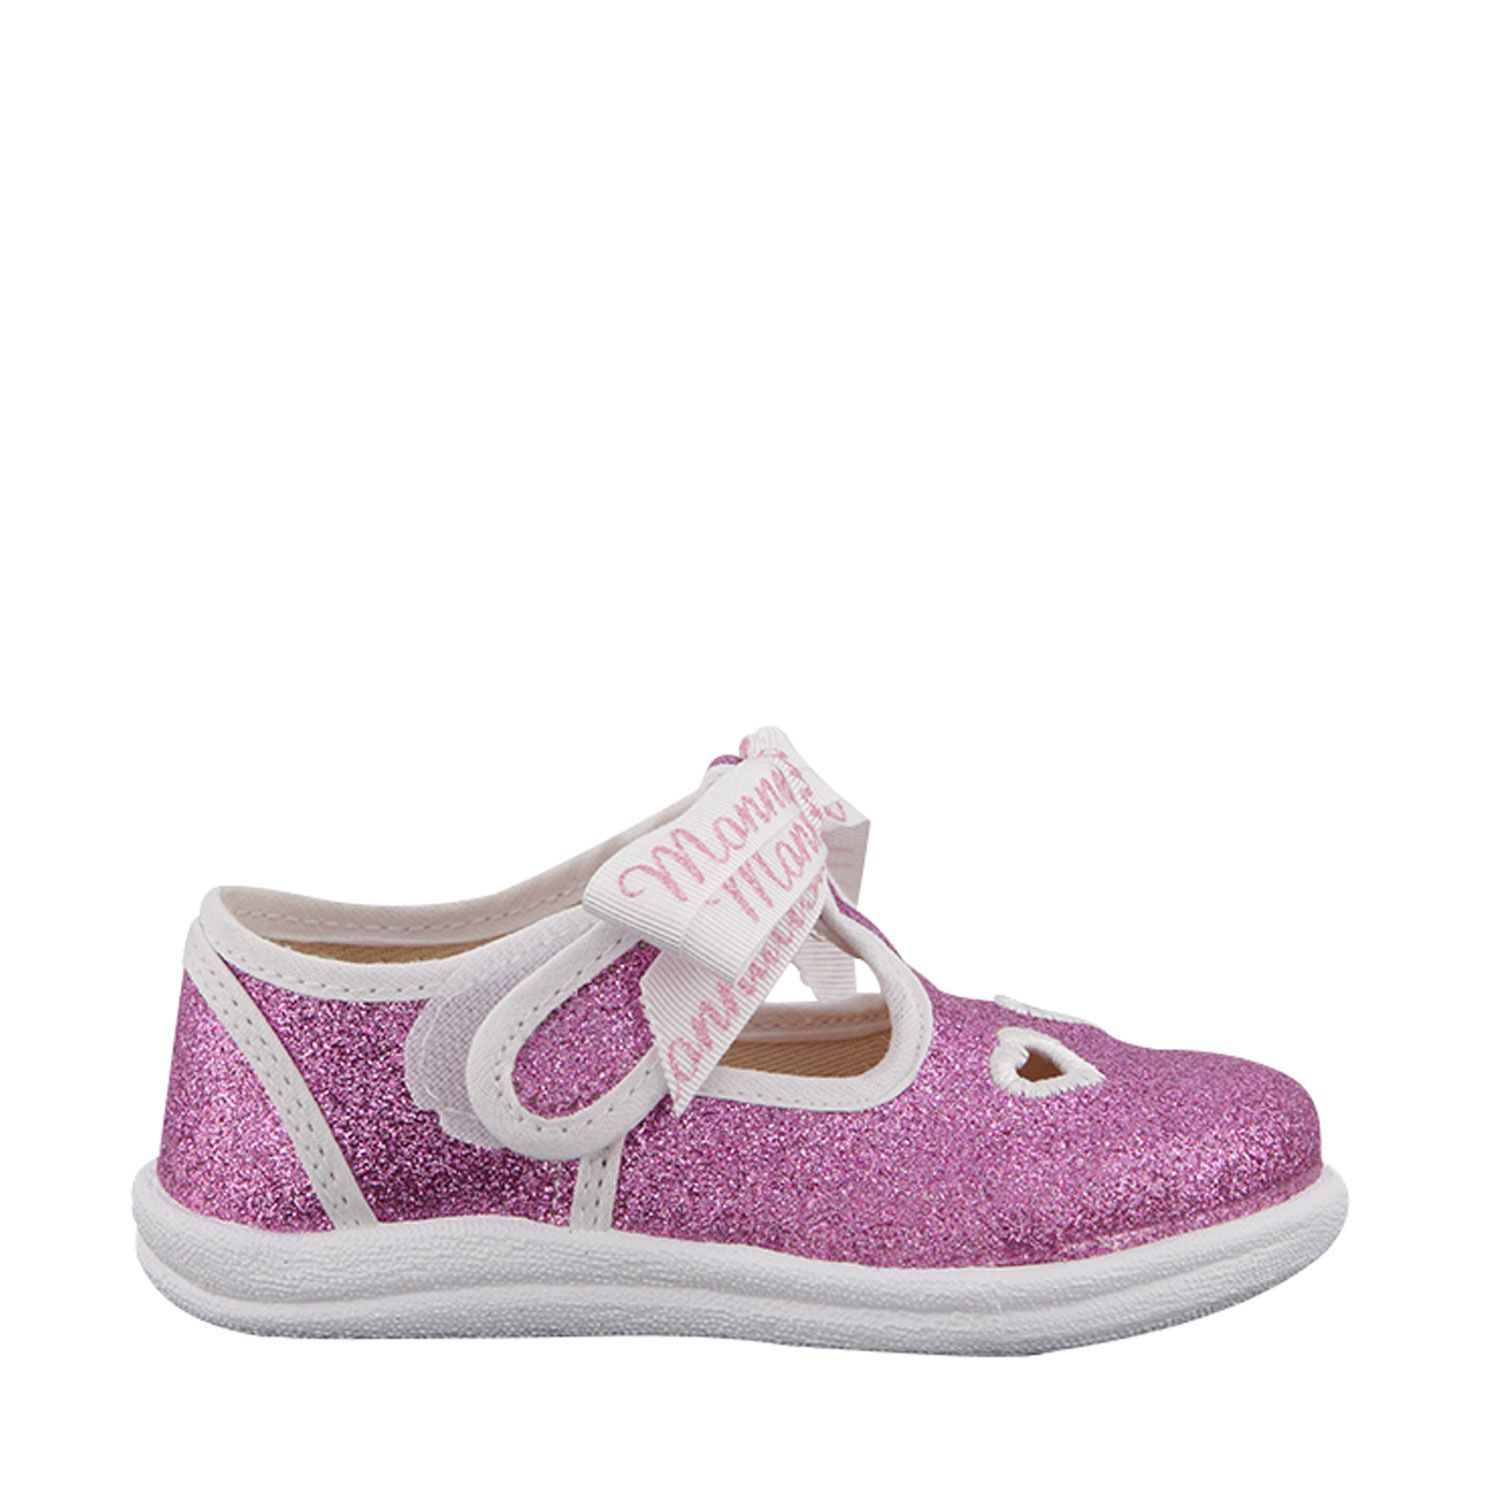 Picture of MonnaLisa 837009 kids shoes fuchsia